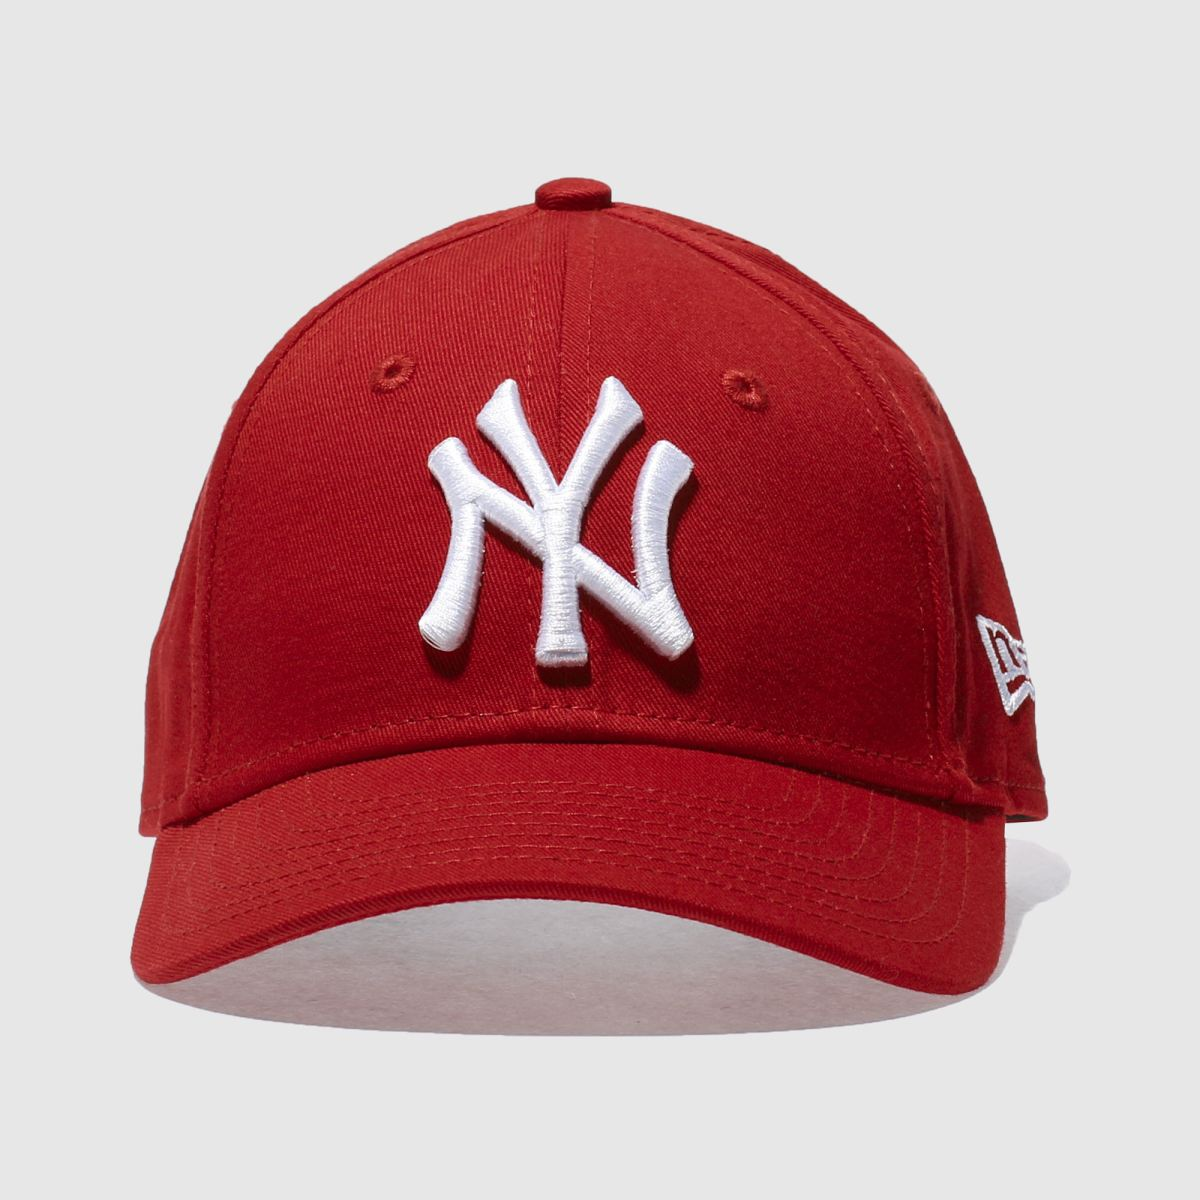 New Era Accessories New Era Red Kids Ny Yankees 9forty